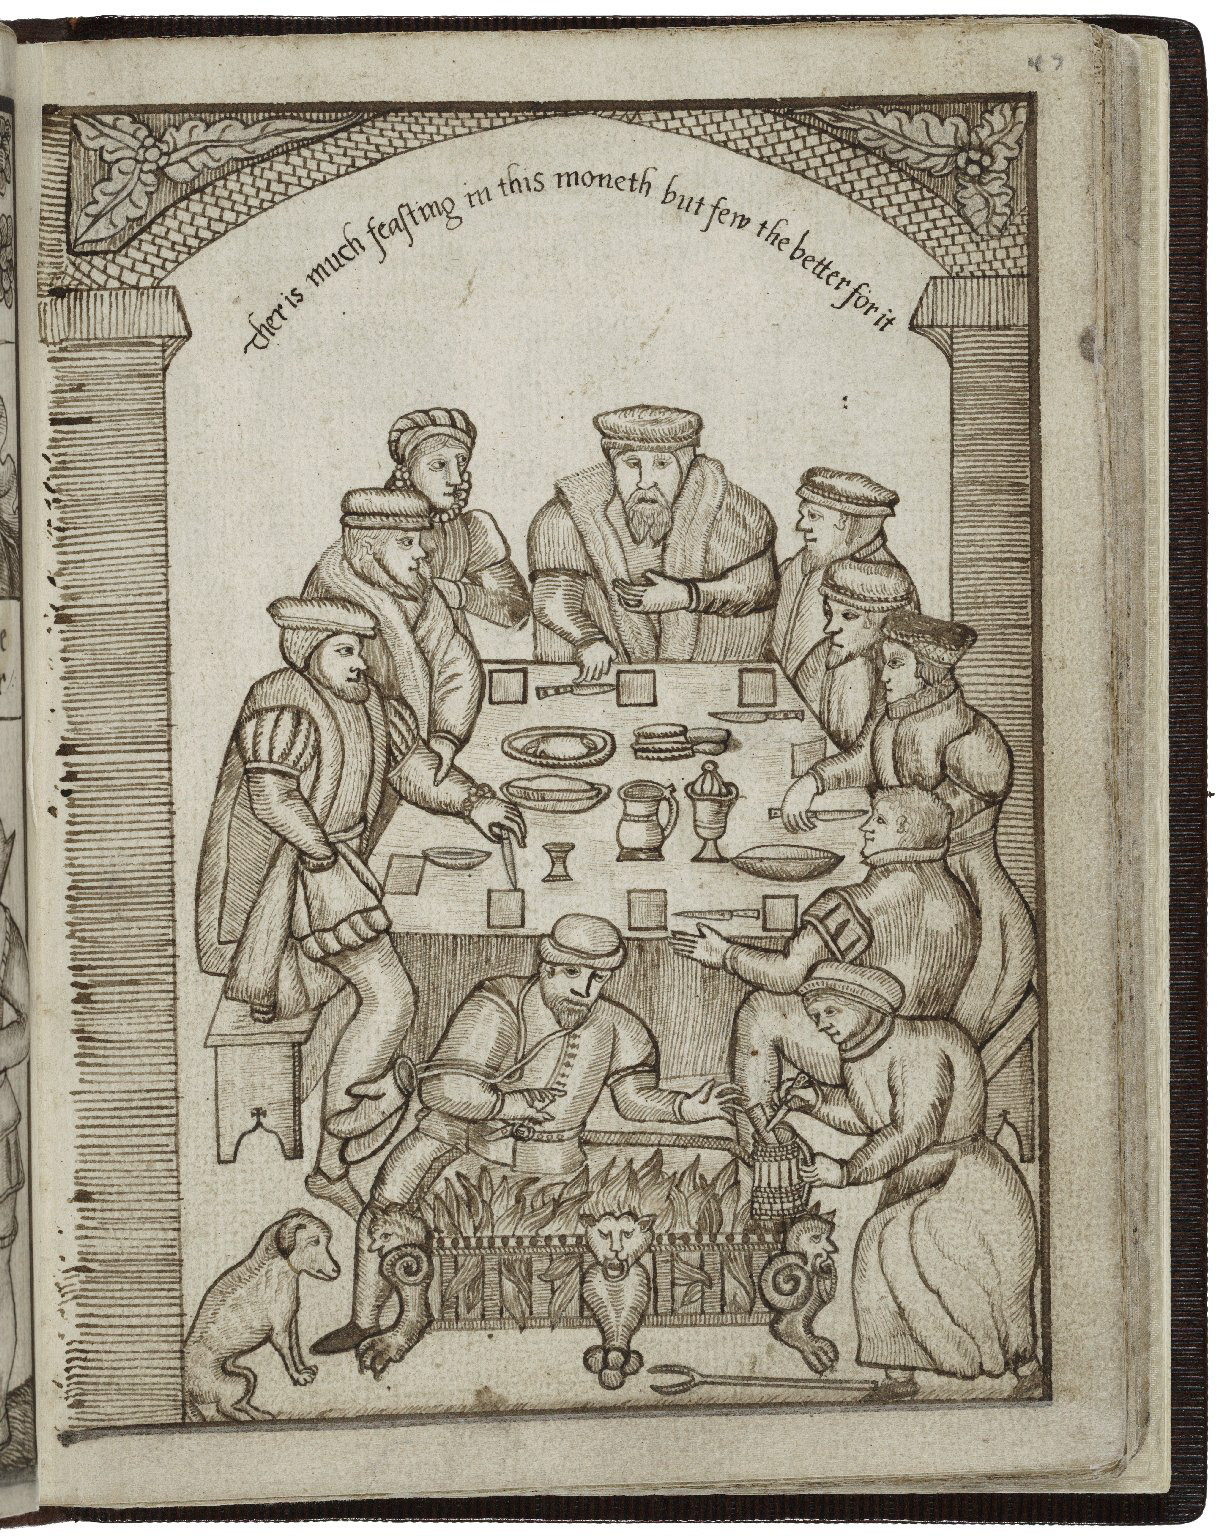 The Gentry in January - feasting at the table